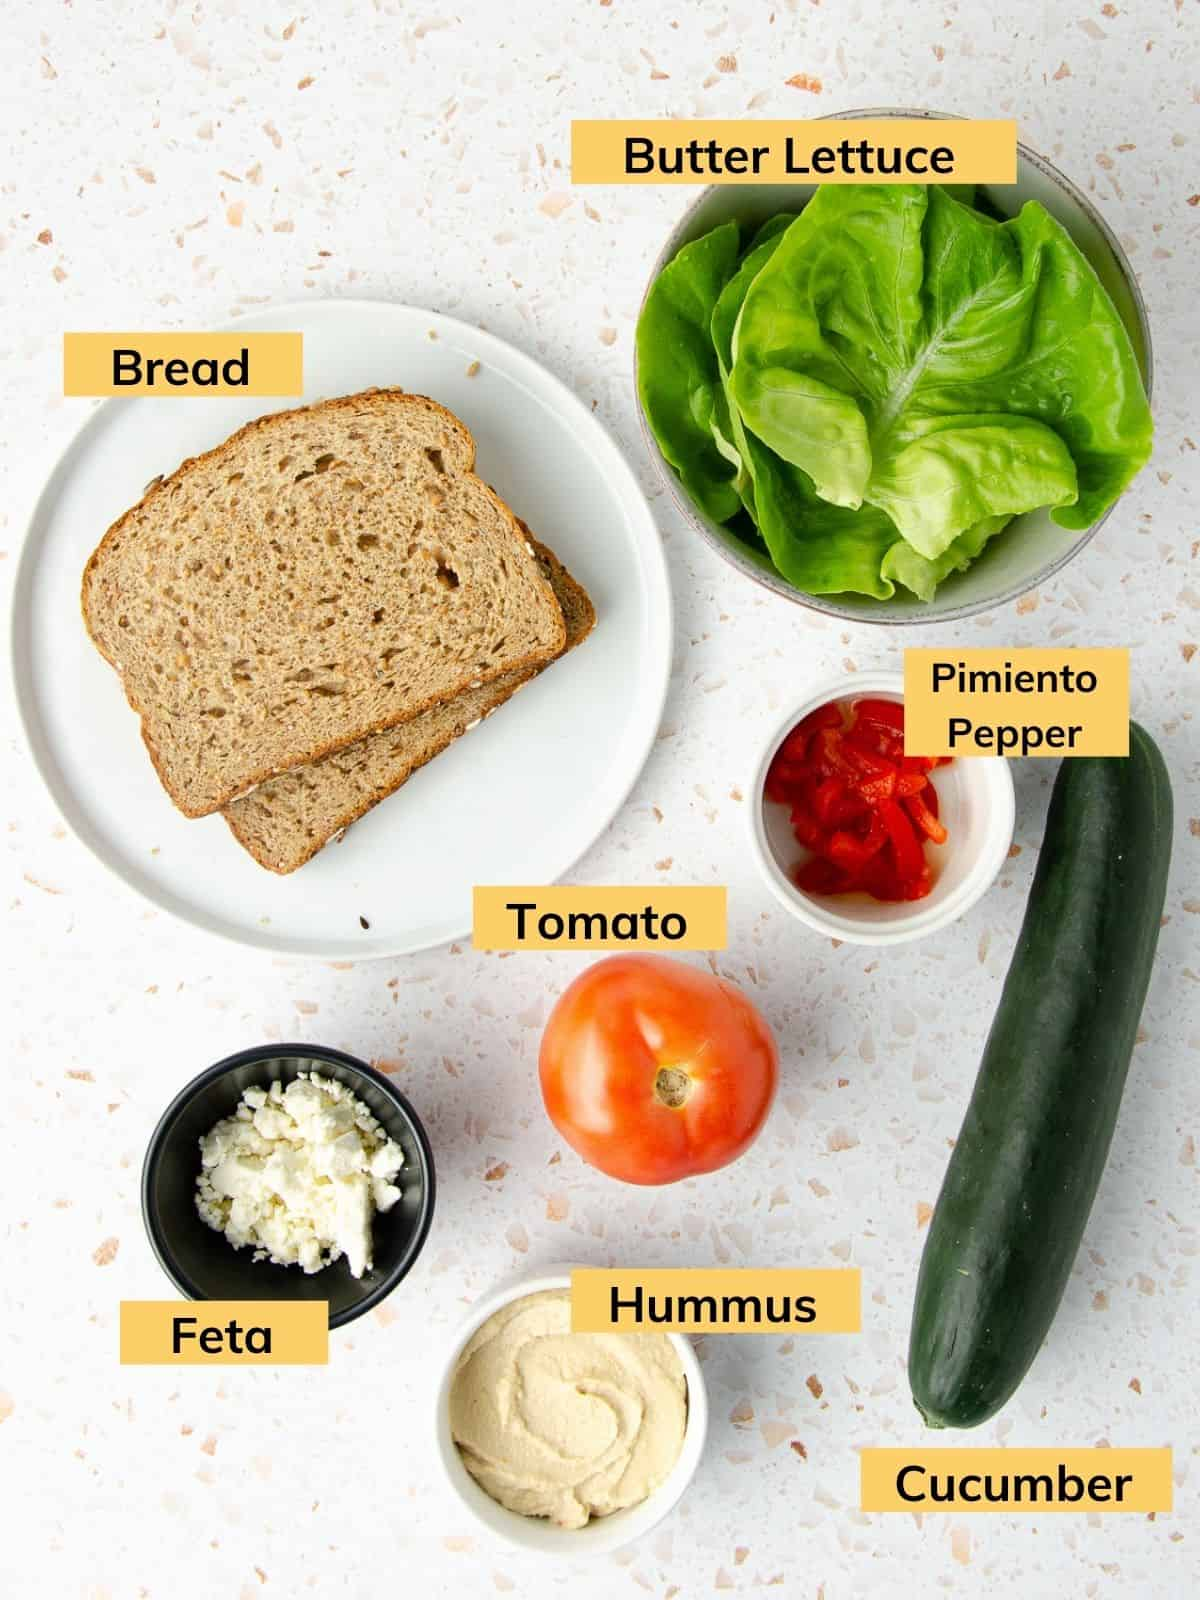 ingredients for a panera mediterranean veggie sandwich: a plate of bread slices, a bowl of feta, a bowl of hummus, one tomato, one cucumber, a bowl of butter lettuce and a small bowl of pimiento peppers